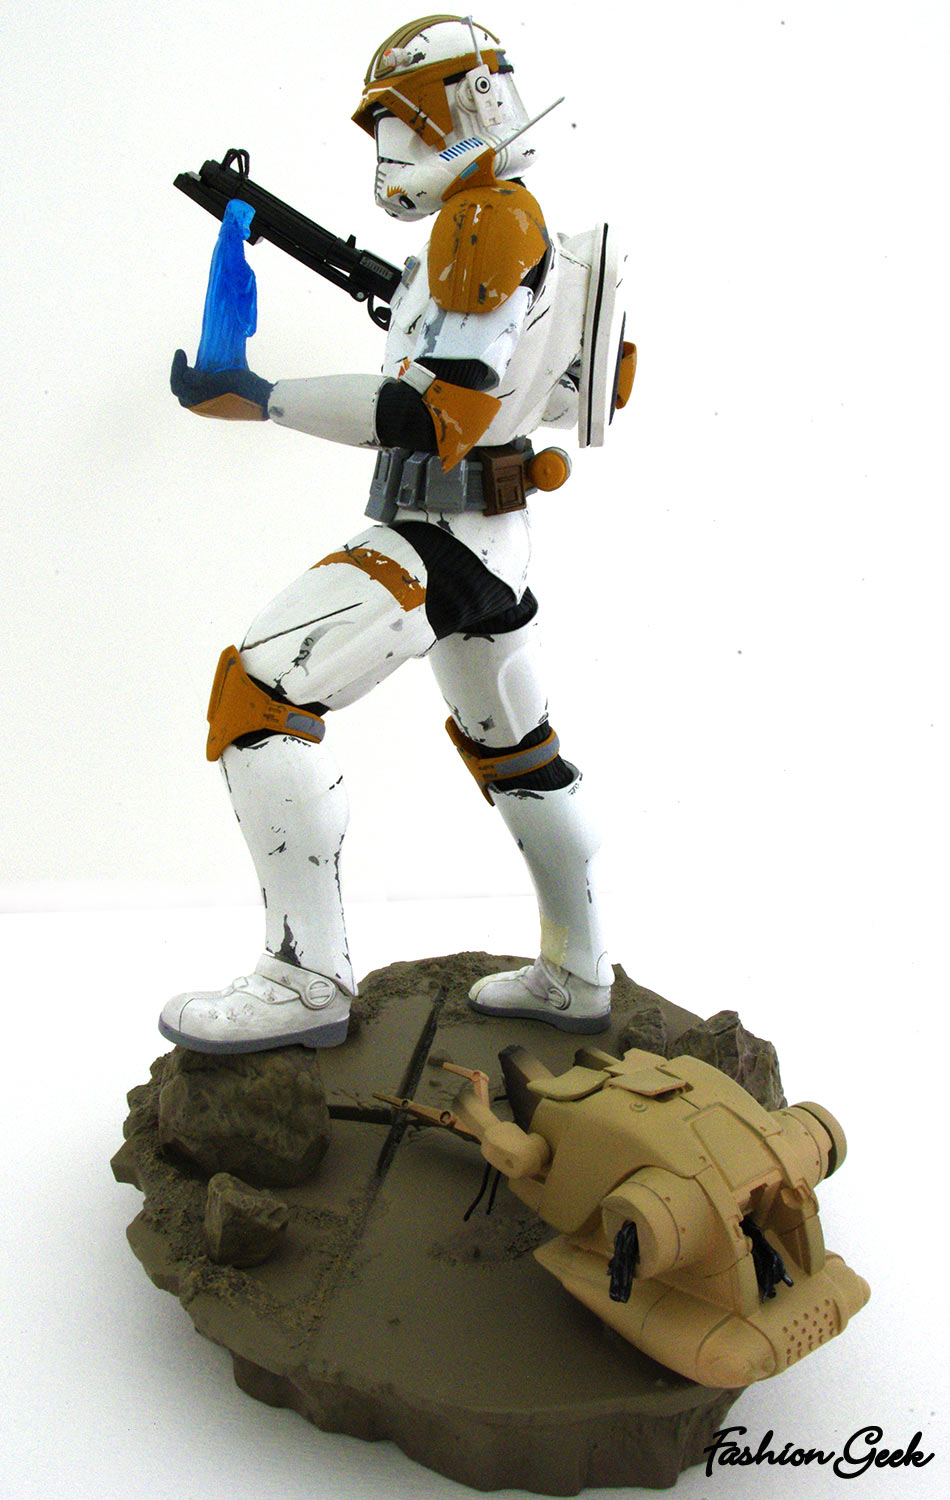 Commander-Cody-star-wars-figurine14